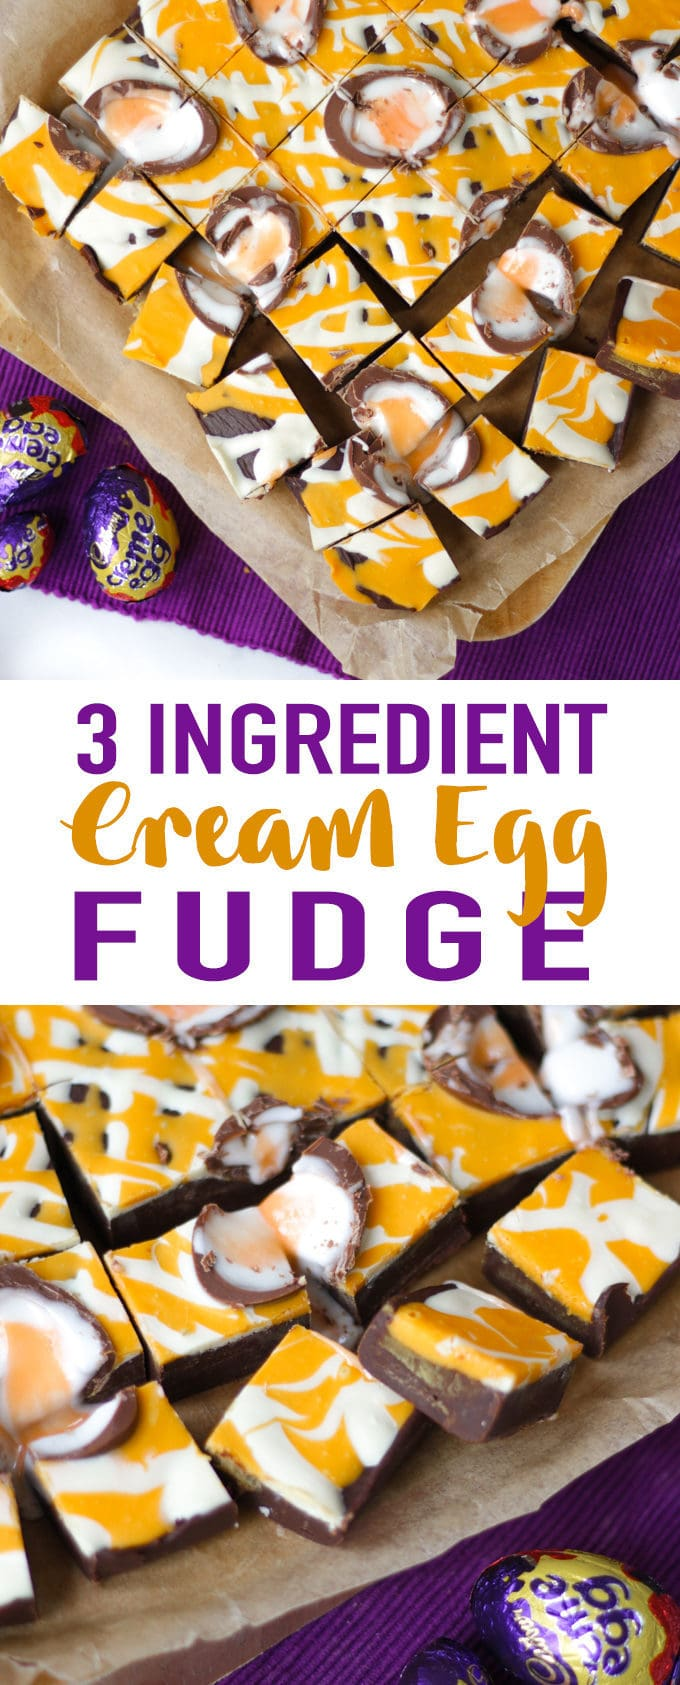 Creme Egg Fudge Recipe Just 3 Ingredients Slow Cooker